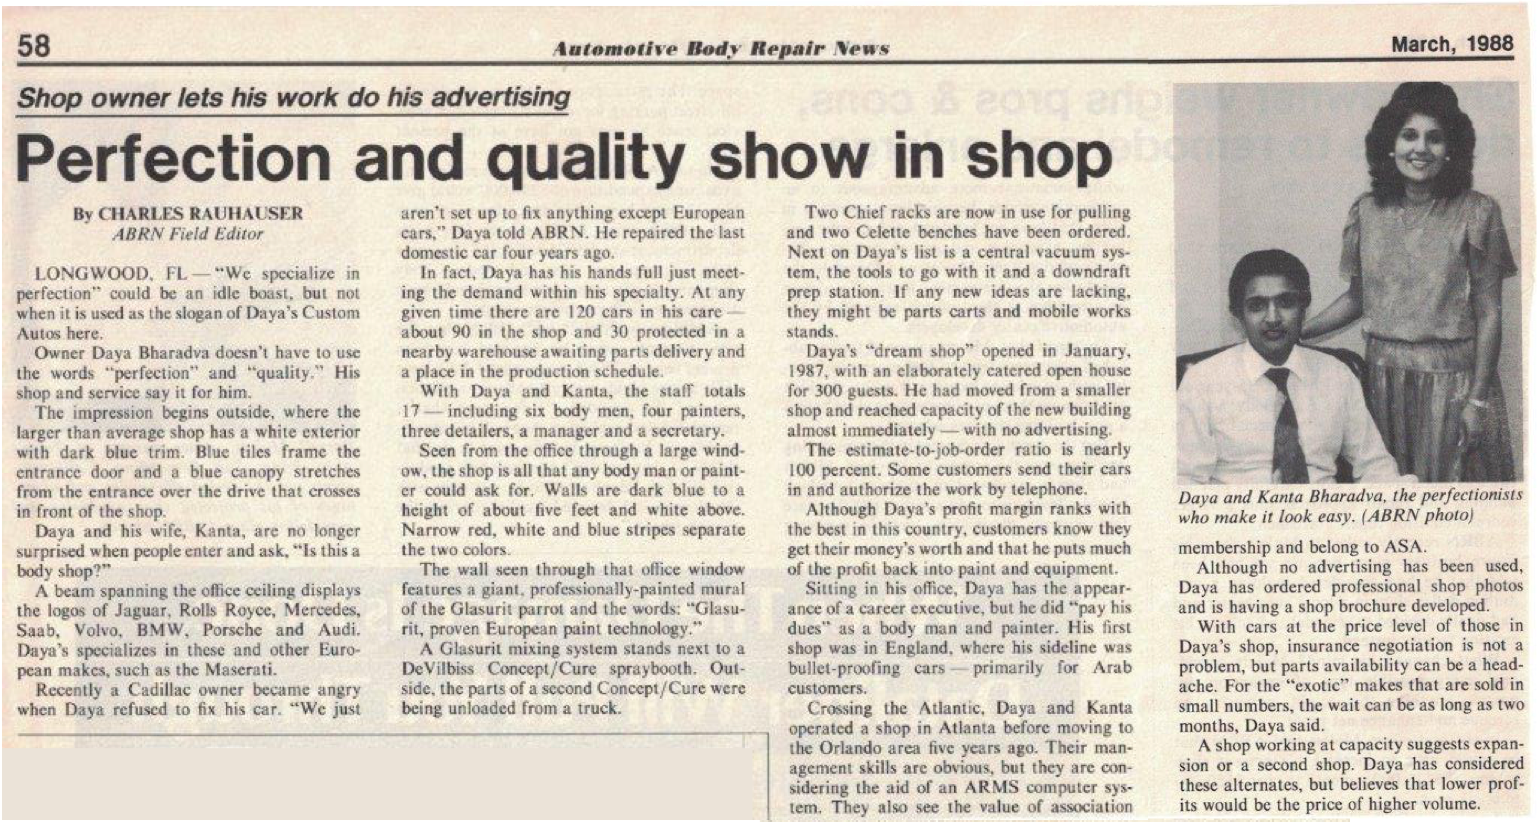 Newspaper clipping, Perfection and quality show in shop, about Daya's